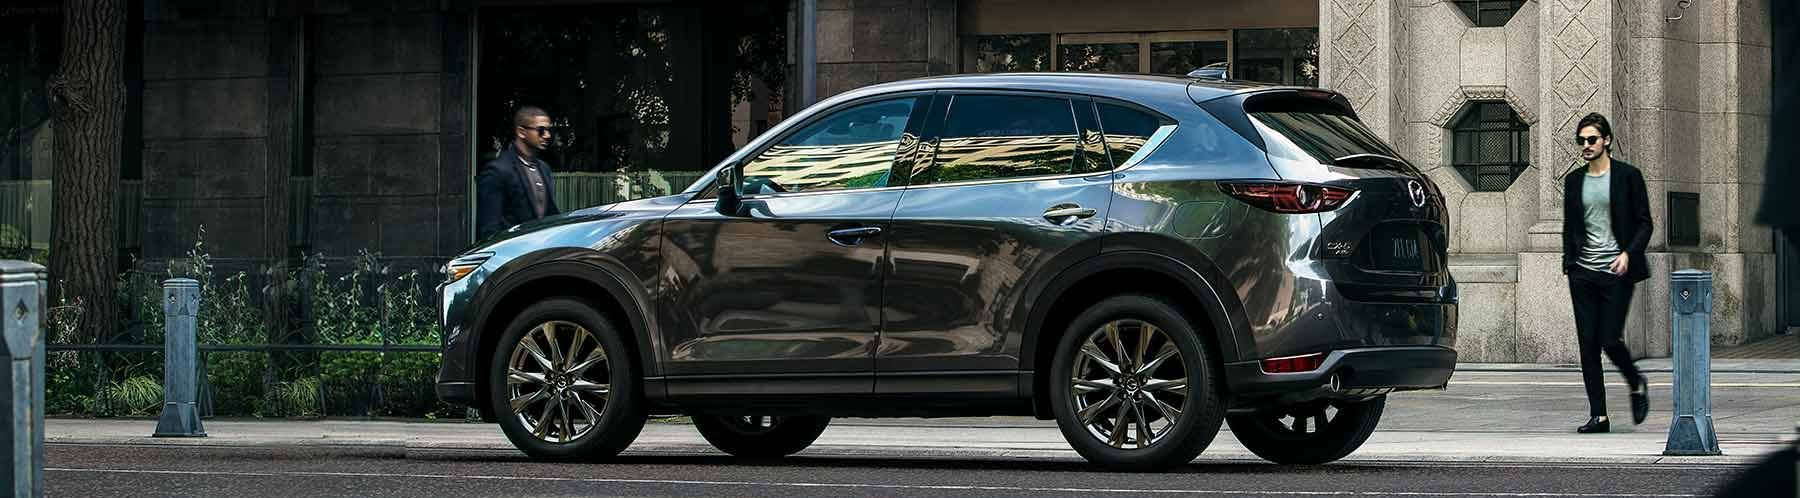 2019 Mazda CX-5 Financing near Lansing, MI